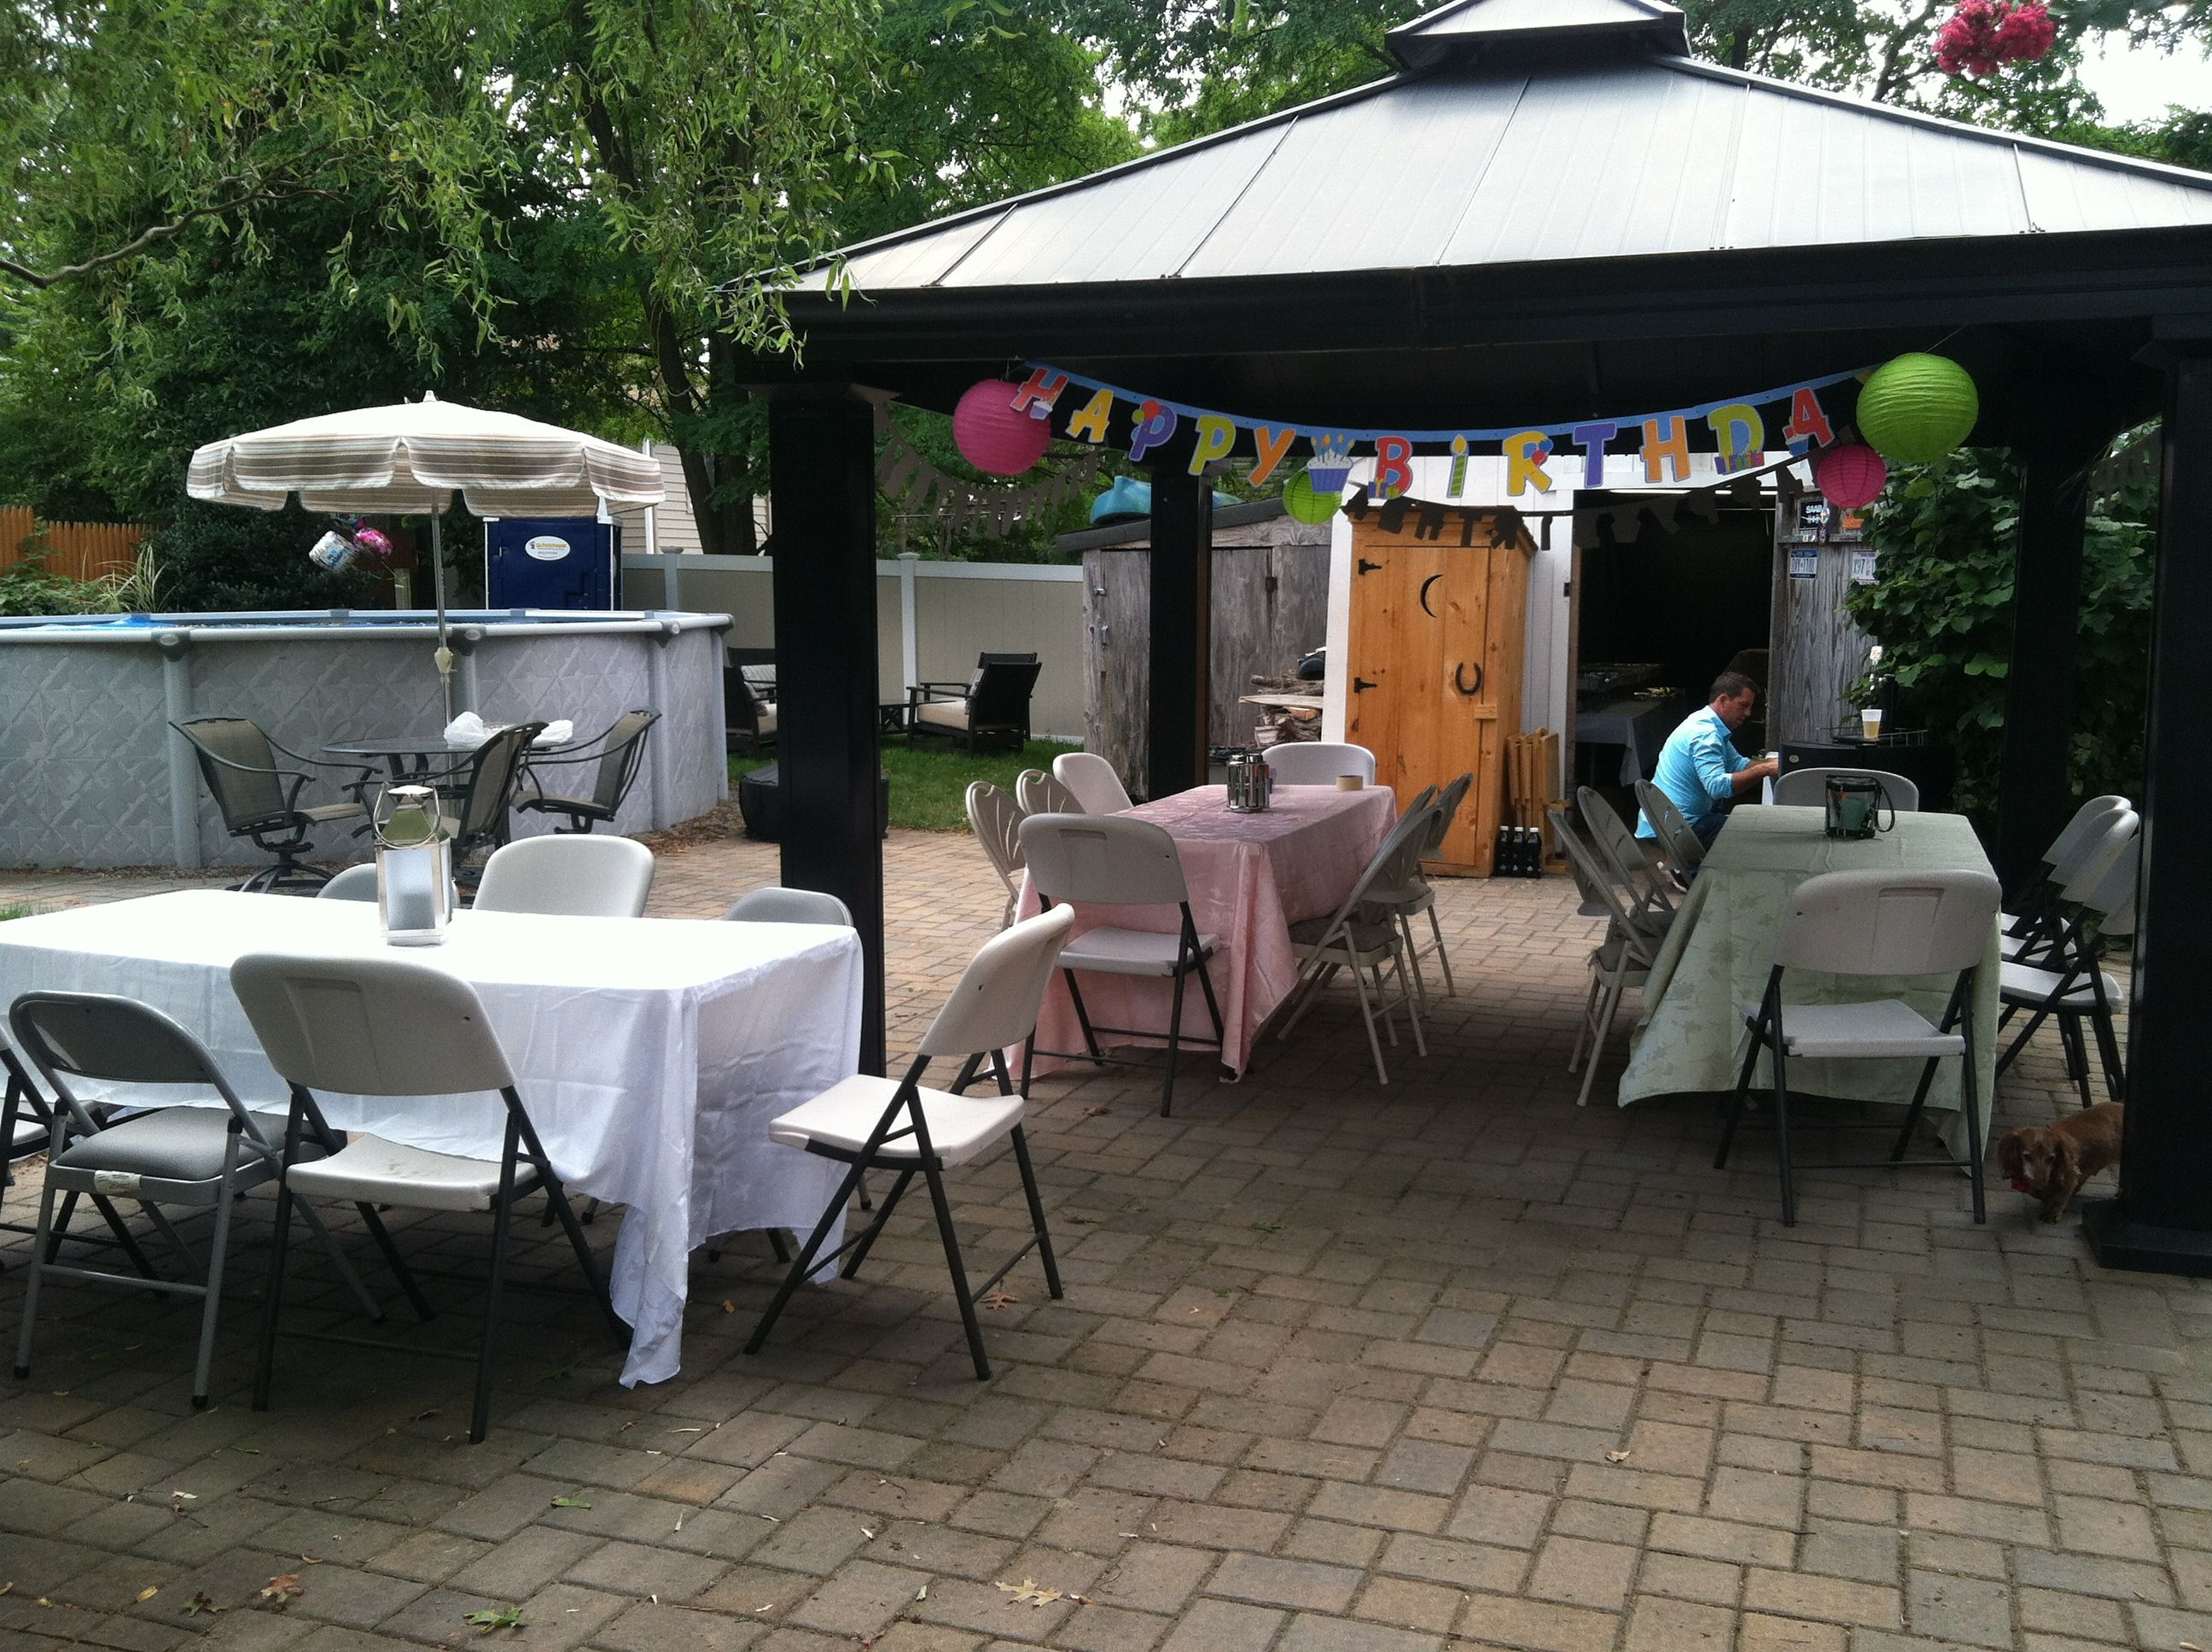 We also put tables on the patio. We decorated the tables the same as the ones on the lawn. Instead of using a single color of clothes; we used pink, green and white. The lanterns were all different colors, sizes and shapes.